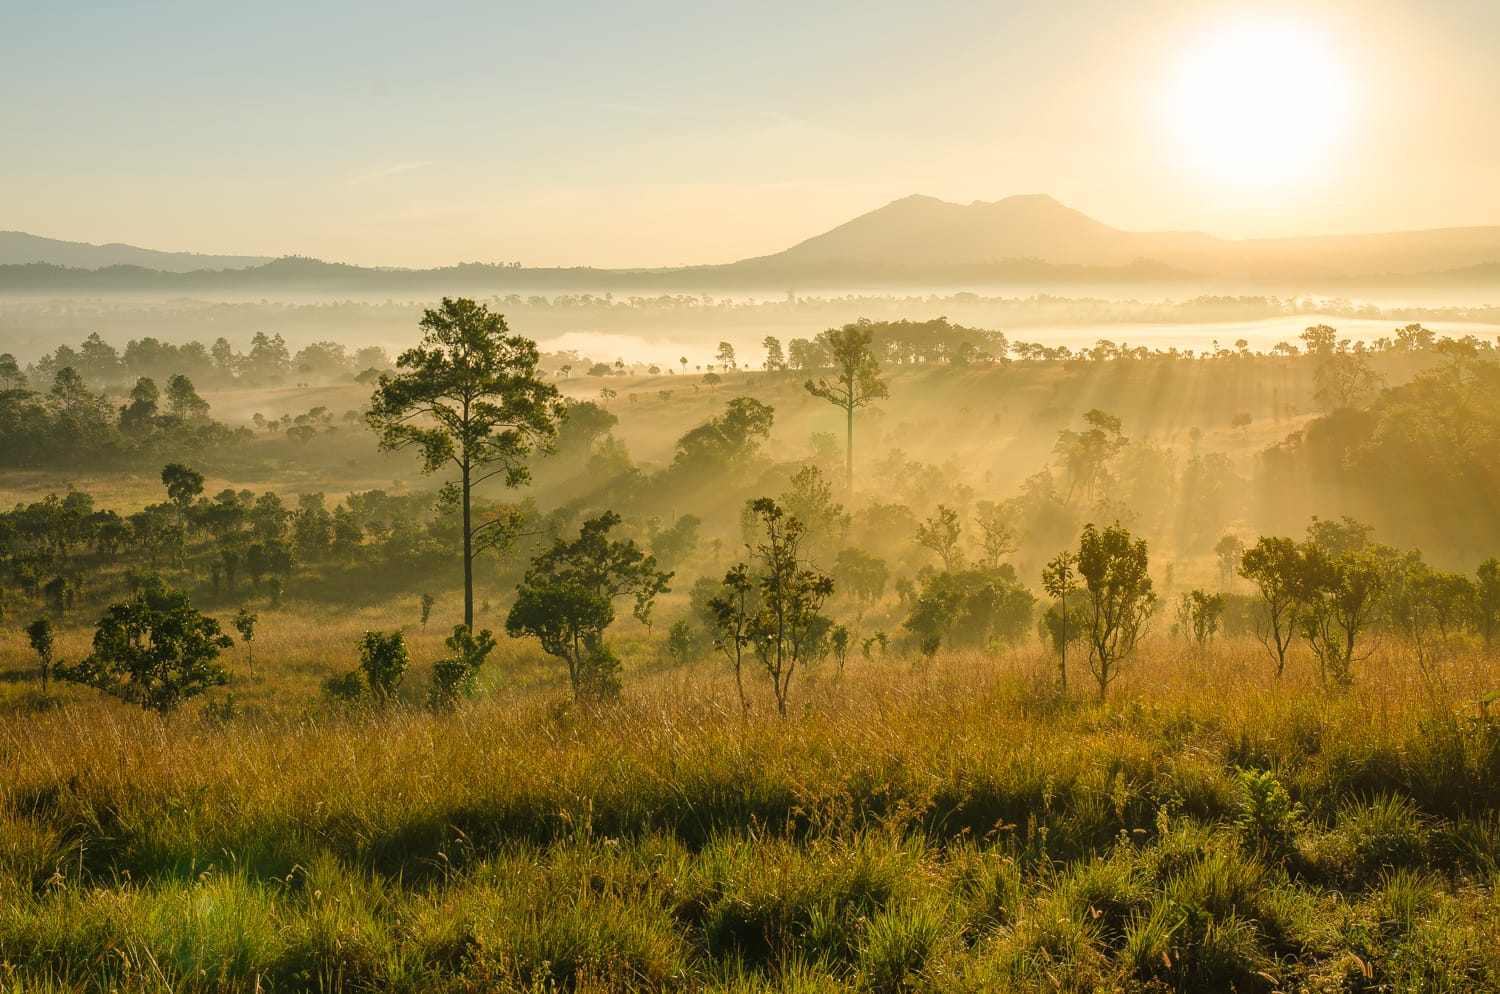 Thung Salaeng Luang National Park in Thailand